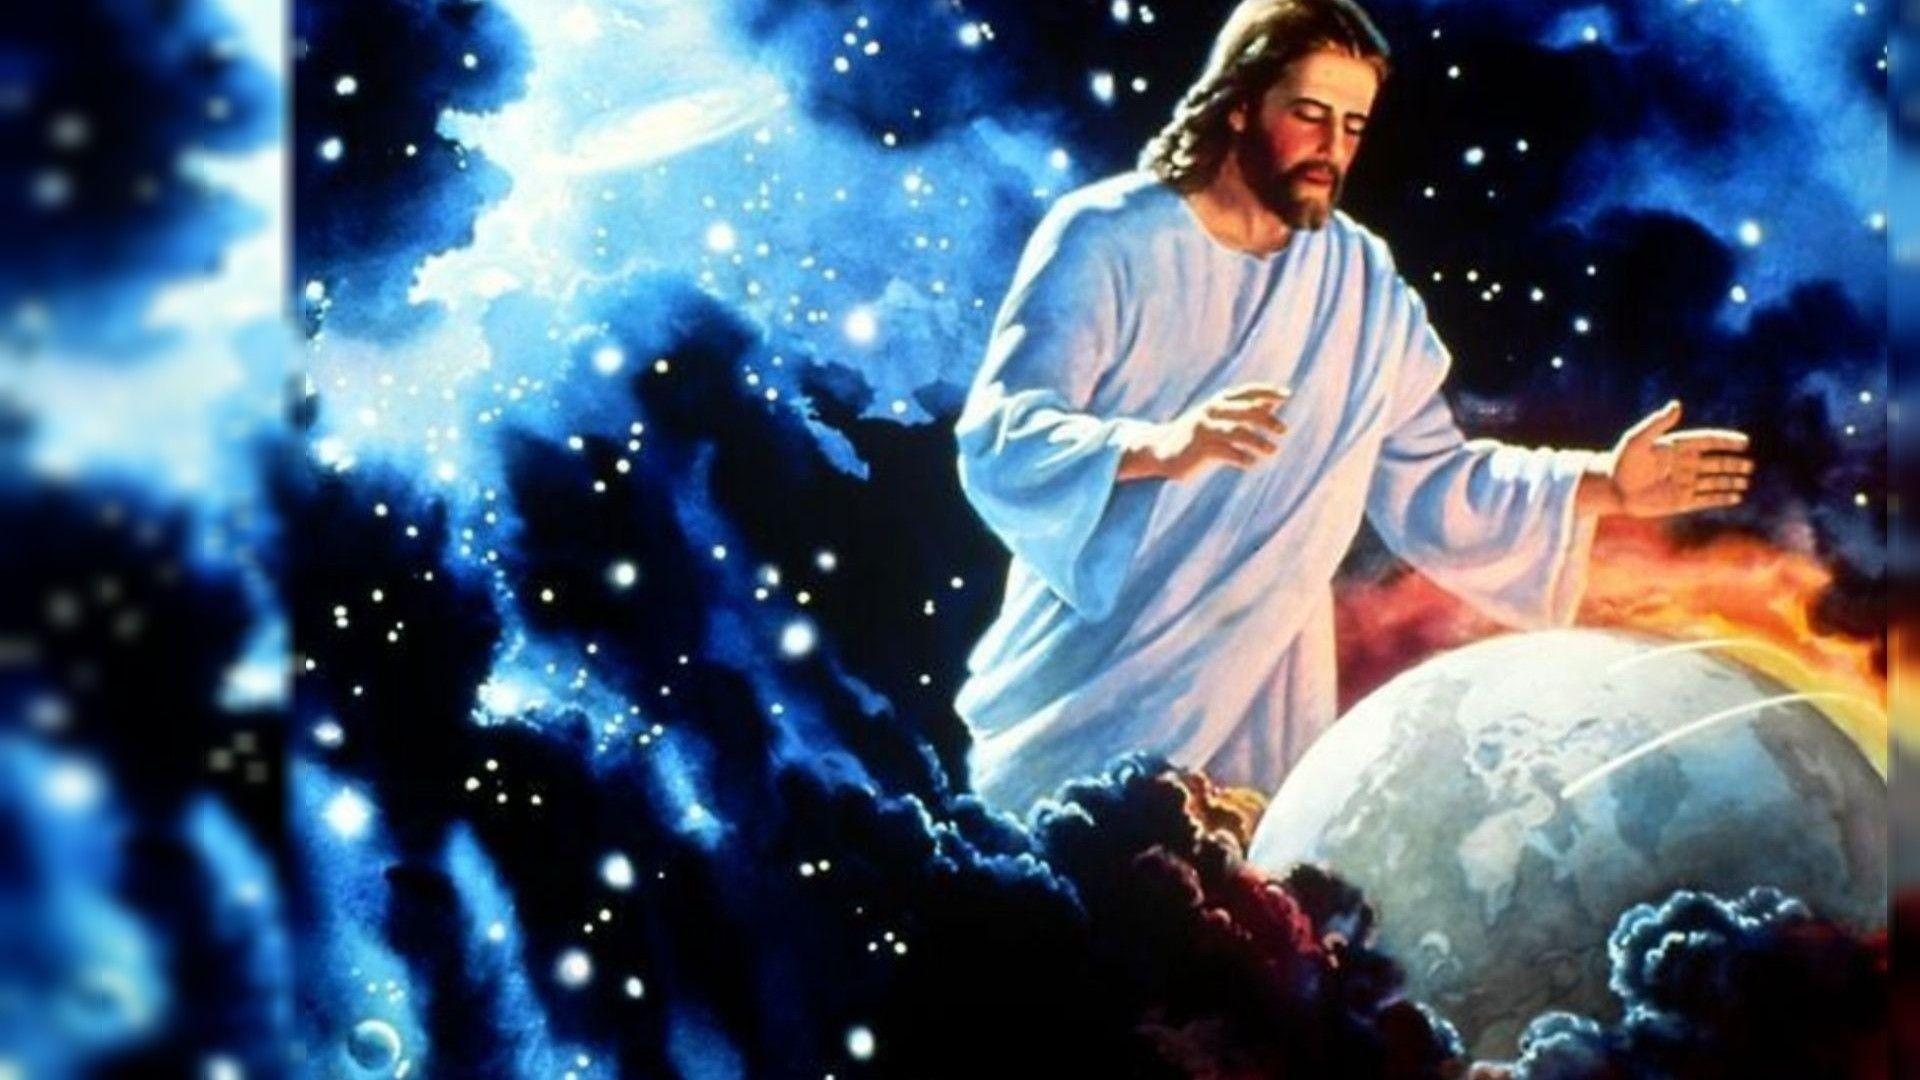 jesus desktop wallpapers hd wallpapers inn